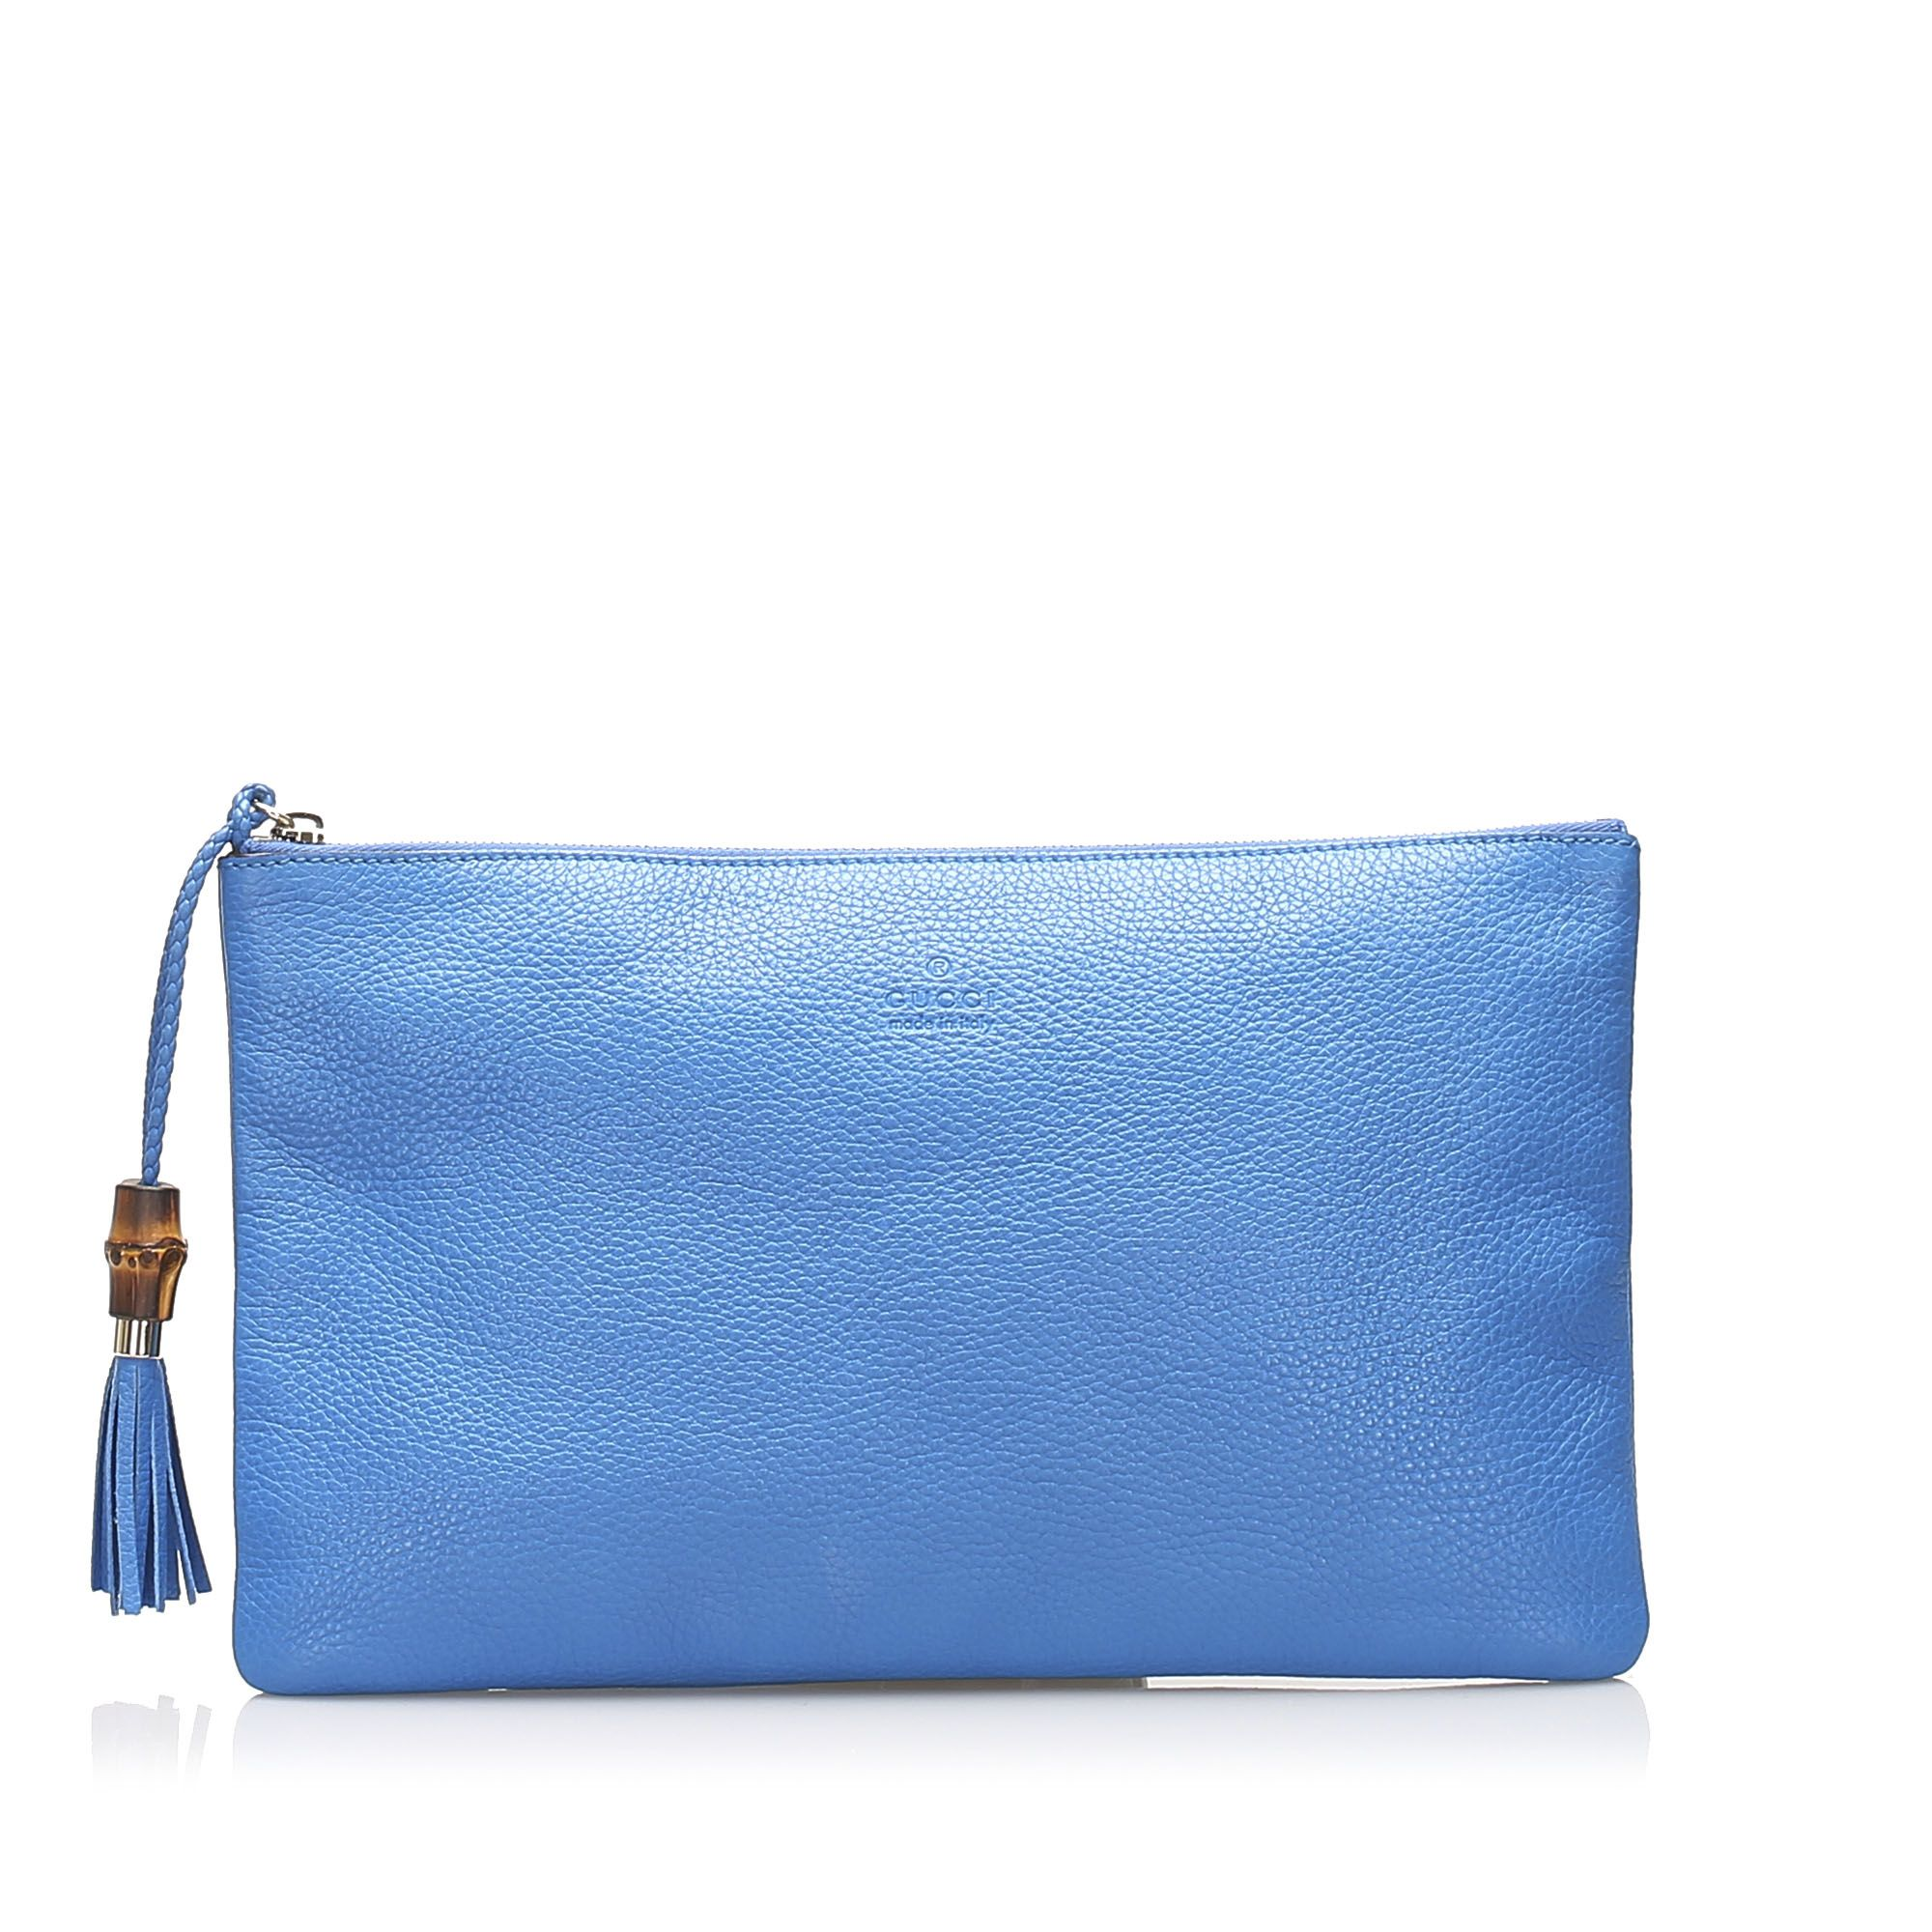 Vintage Gucci Bamboo Leather Clutch Bag Blue